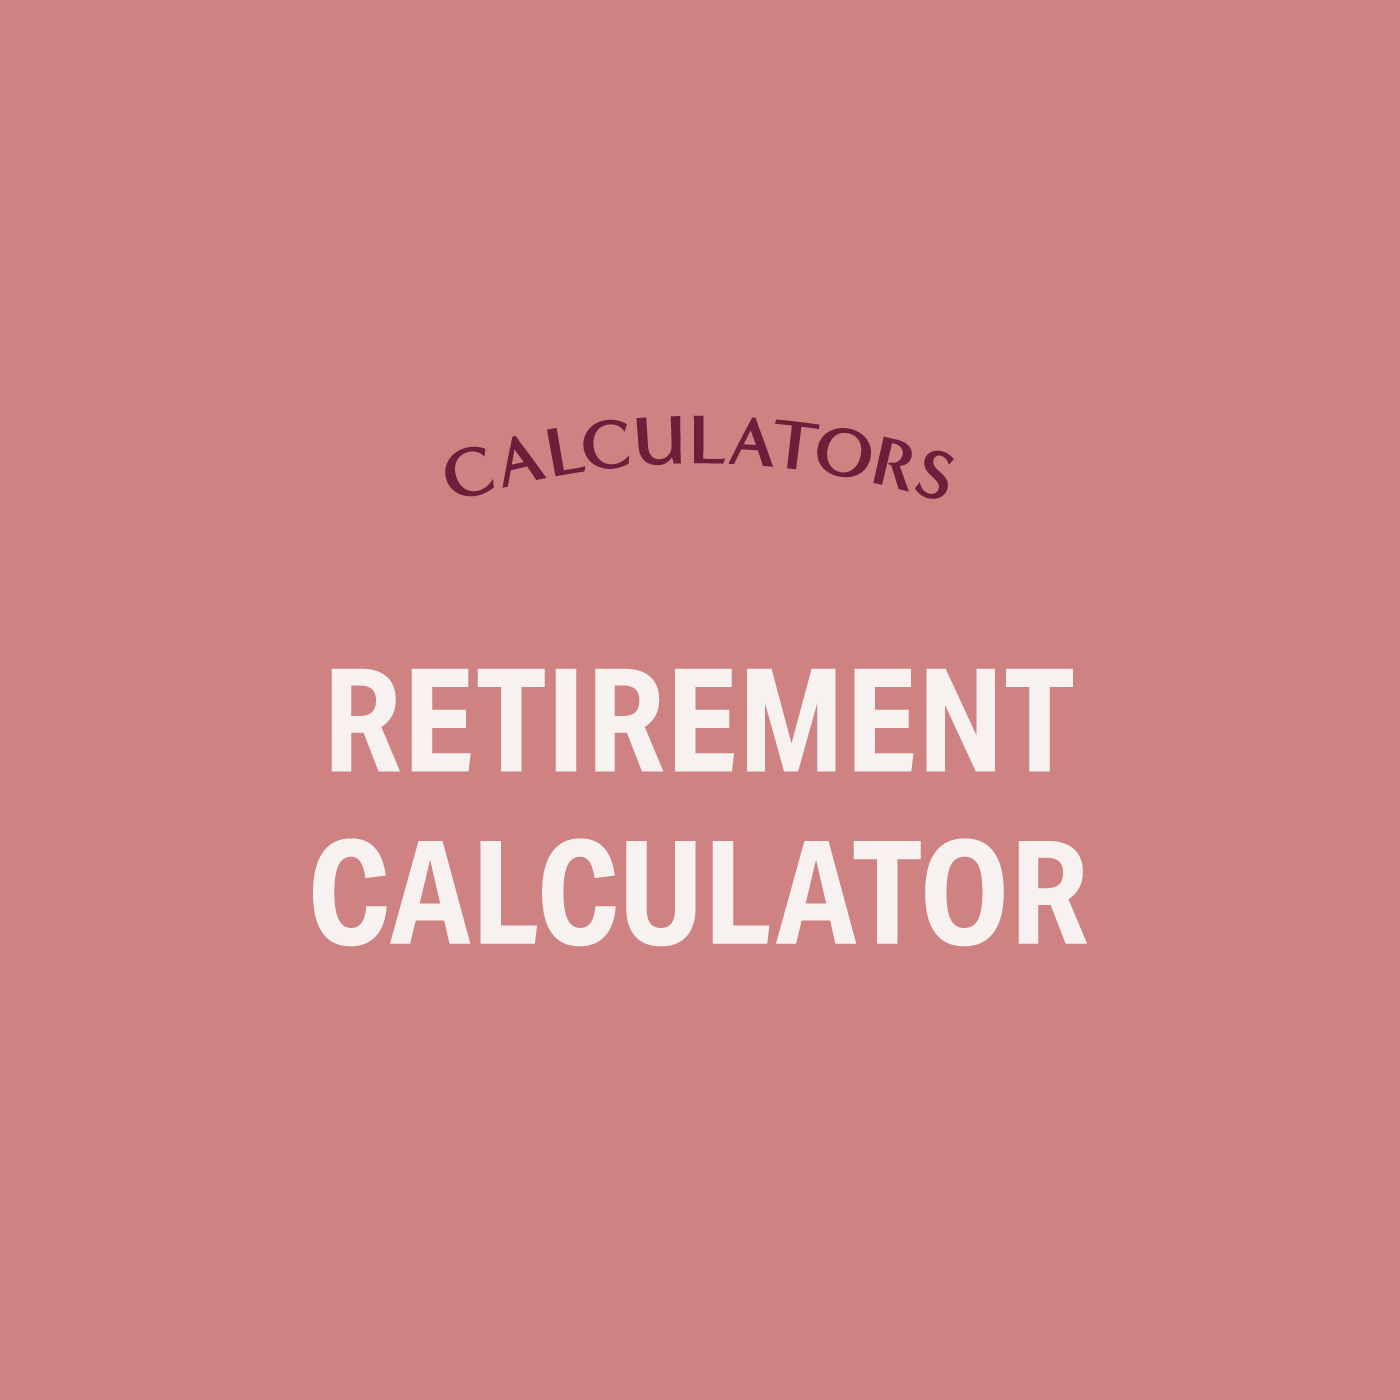 - Use this retirement calculator to toggle different savings rates, investment returns, etc. and it will show whether you're on track for the retirement you want.